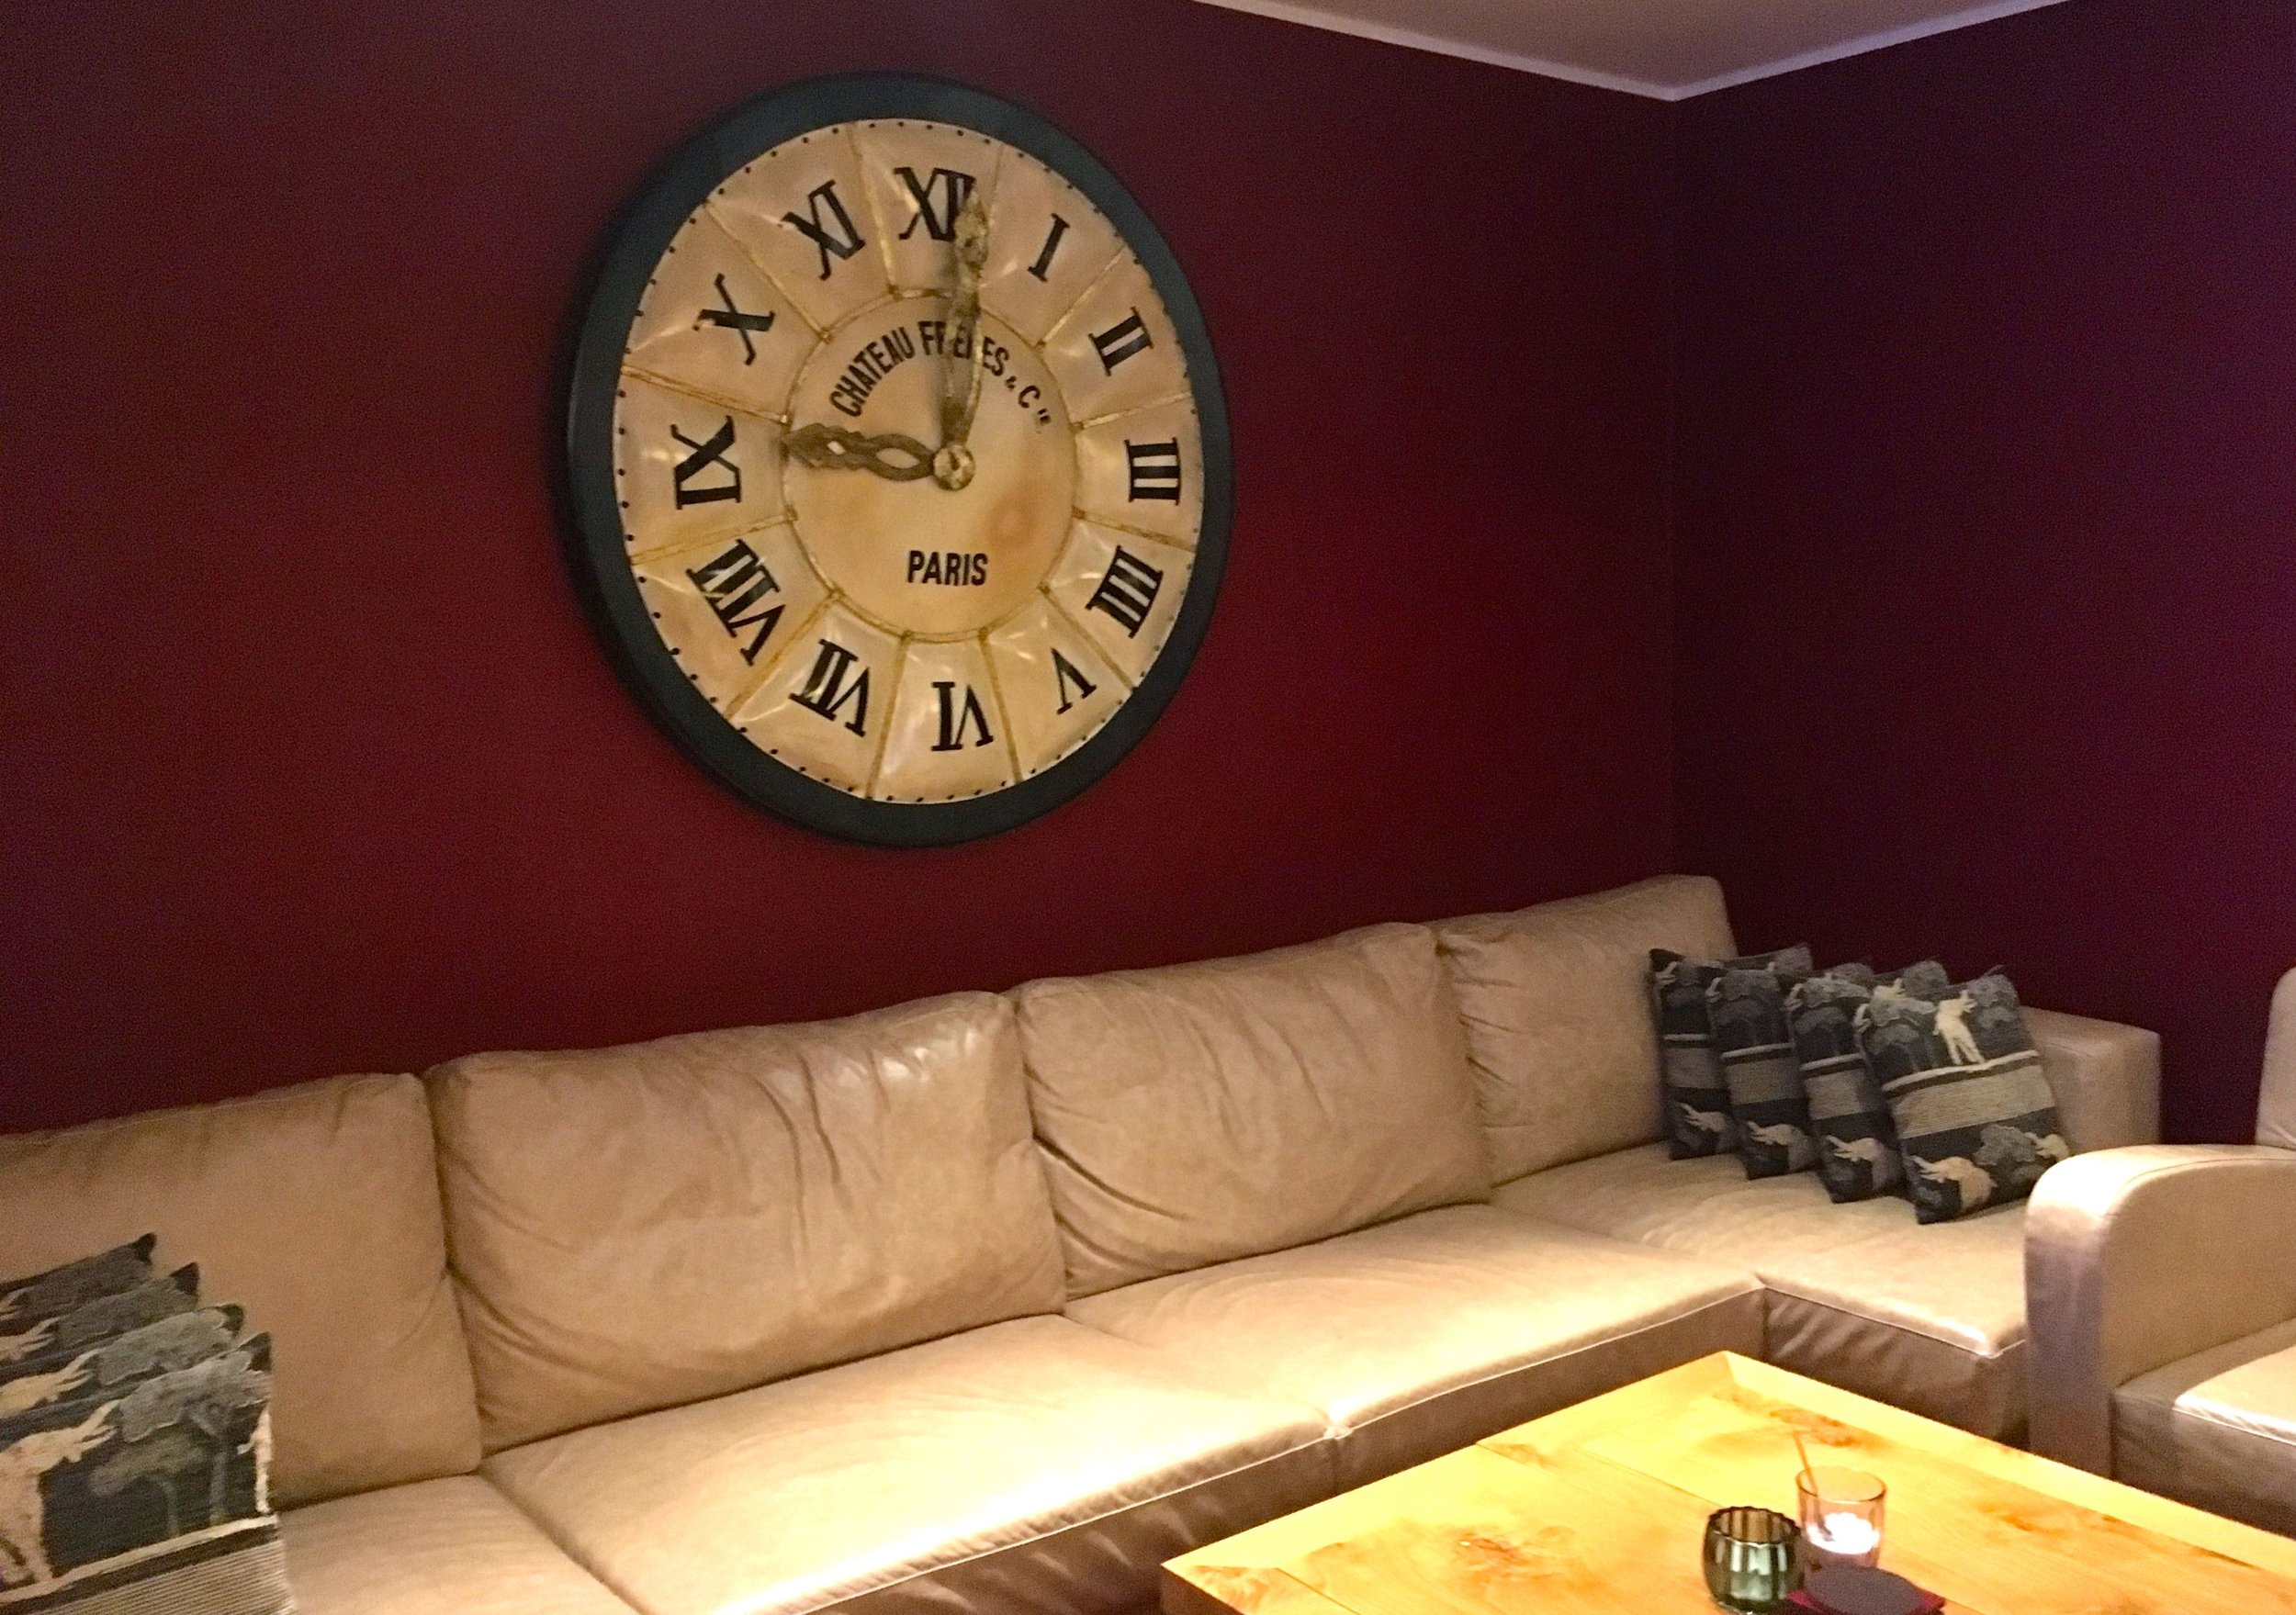 Comfy sofas and an oversized clock in one part of the hotel bar